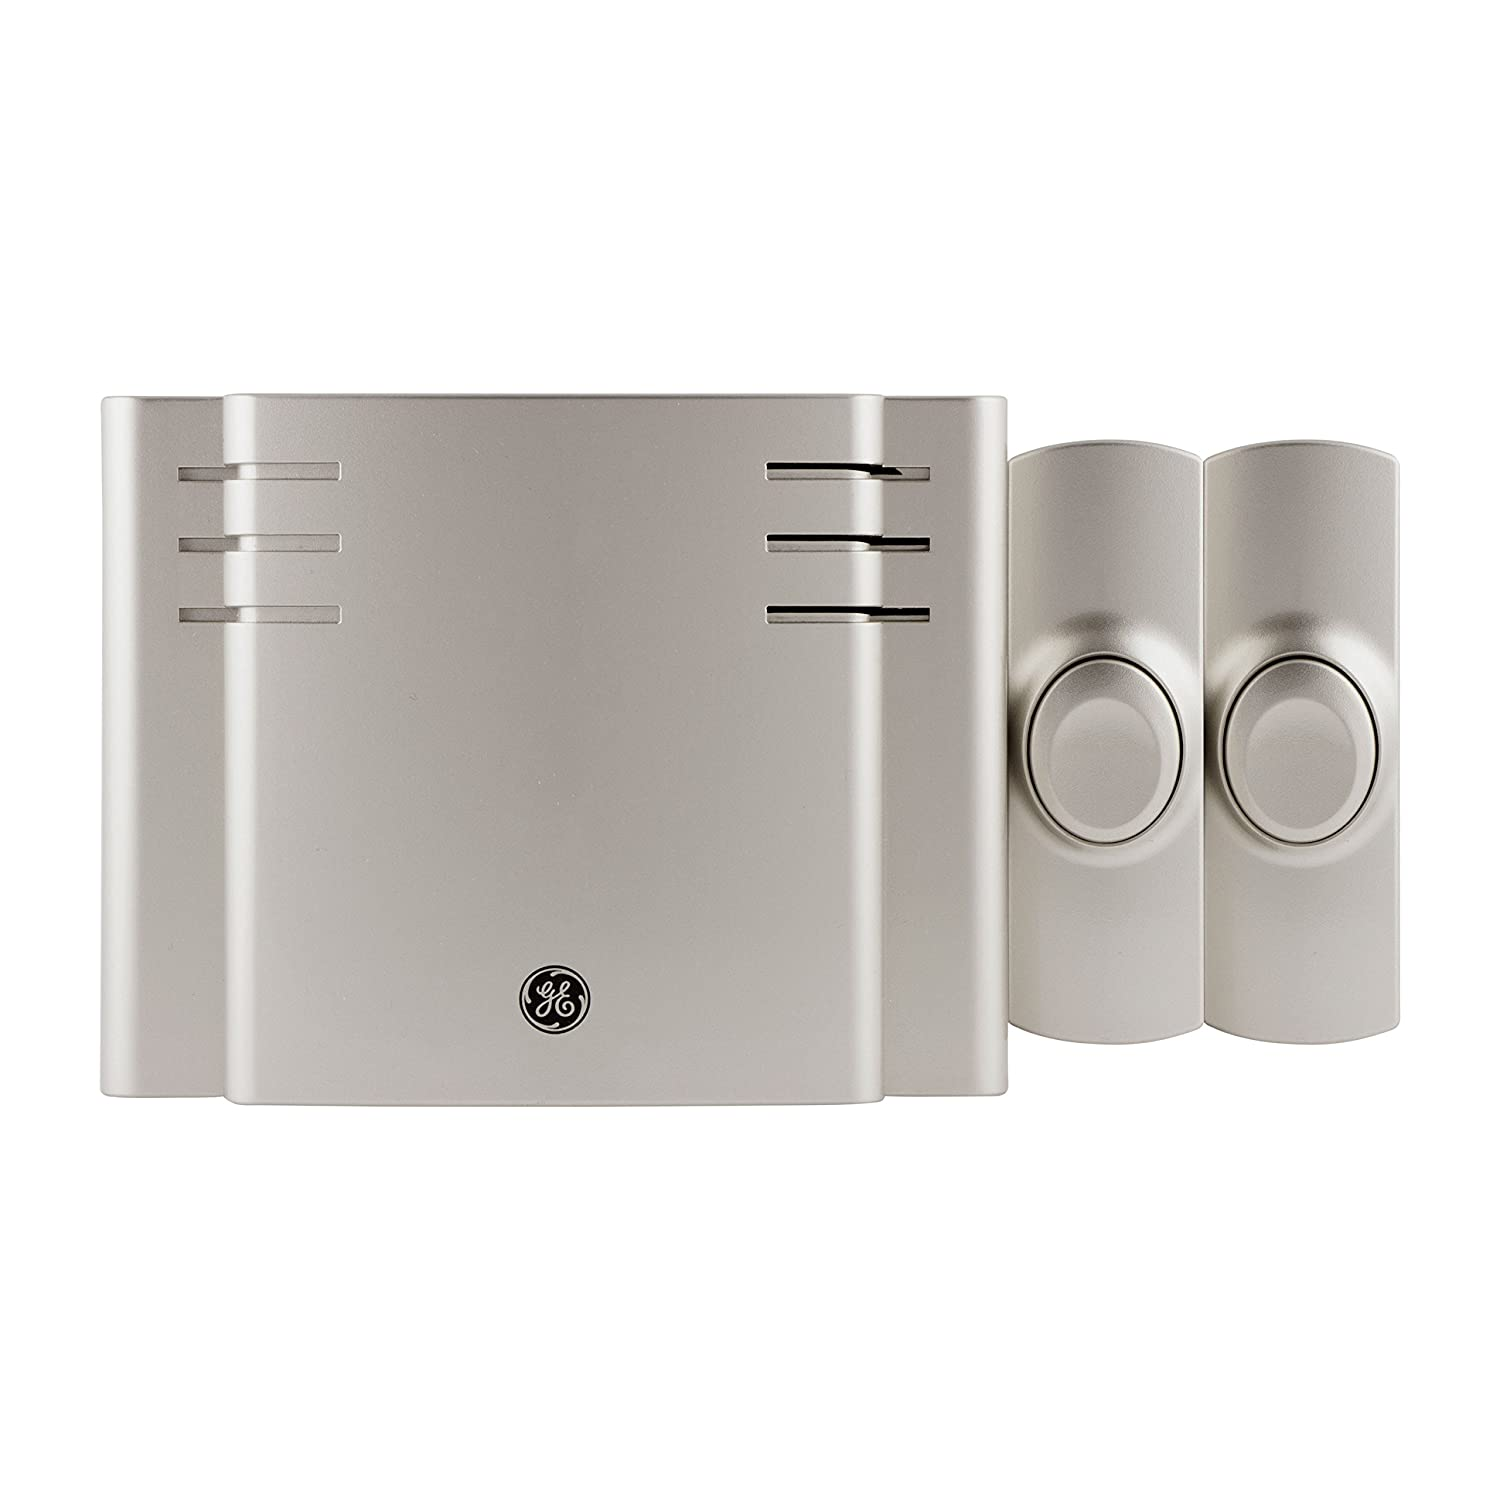 GE Wireless Doorbell Kit, 8 Melodies, 1 Receiver, 2 Push Buttons, Battery-Operated, 150 Feet Range, Satin Nickel, 30393, 3